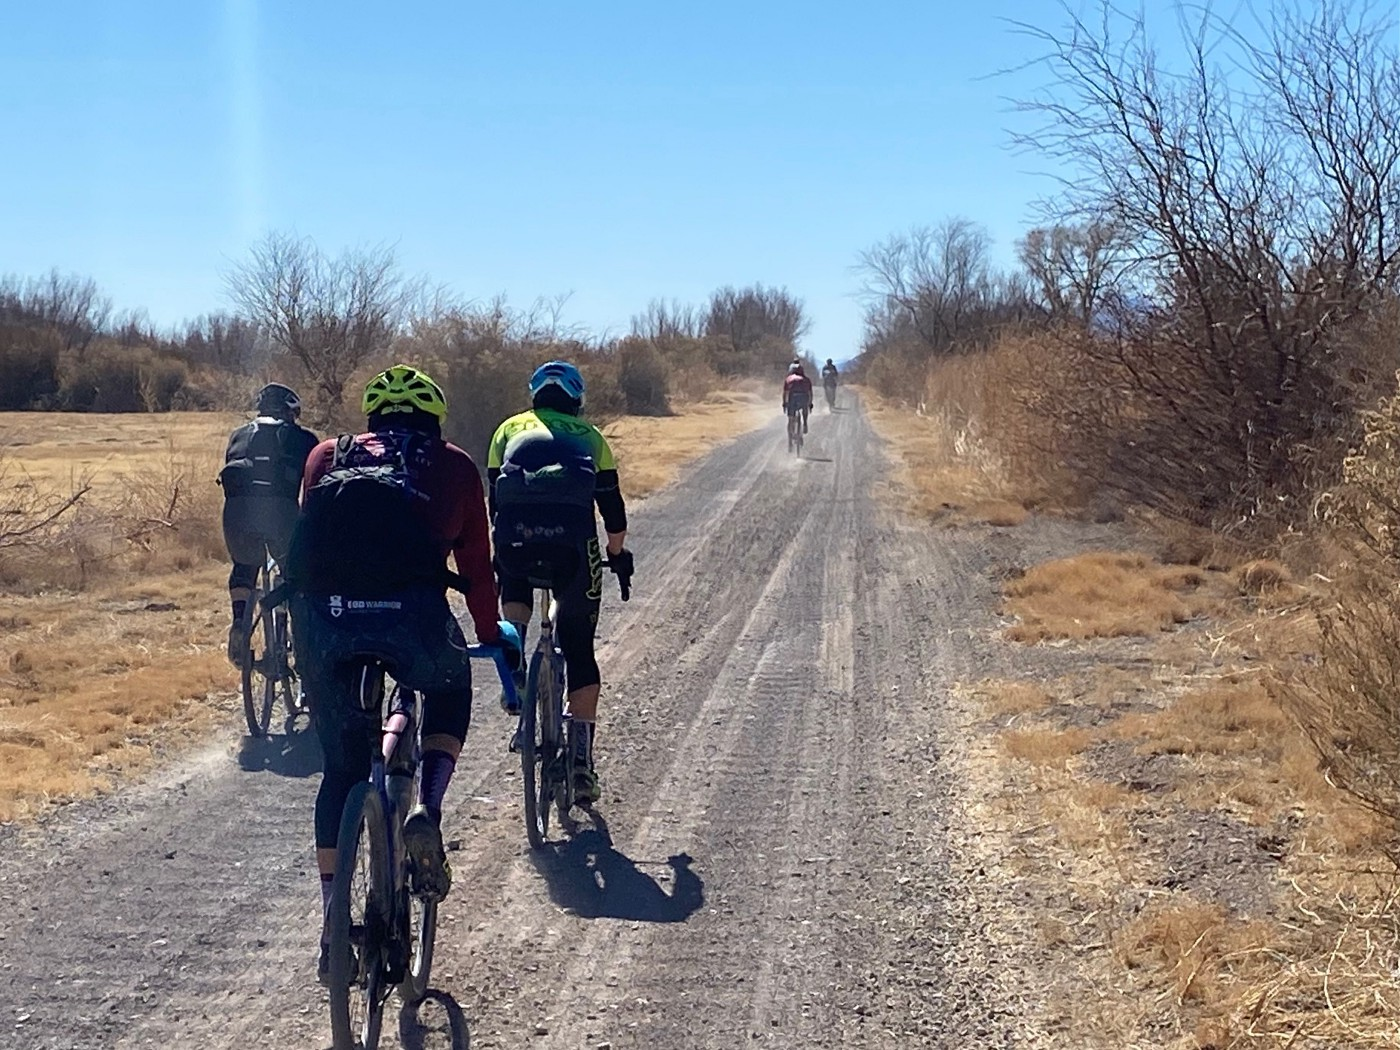 Five bike riders riding on a trail in the desert